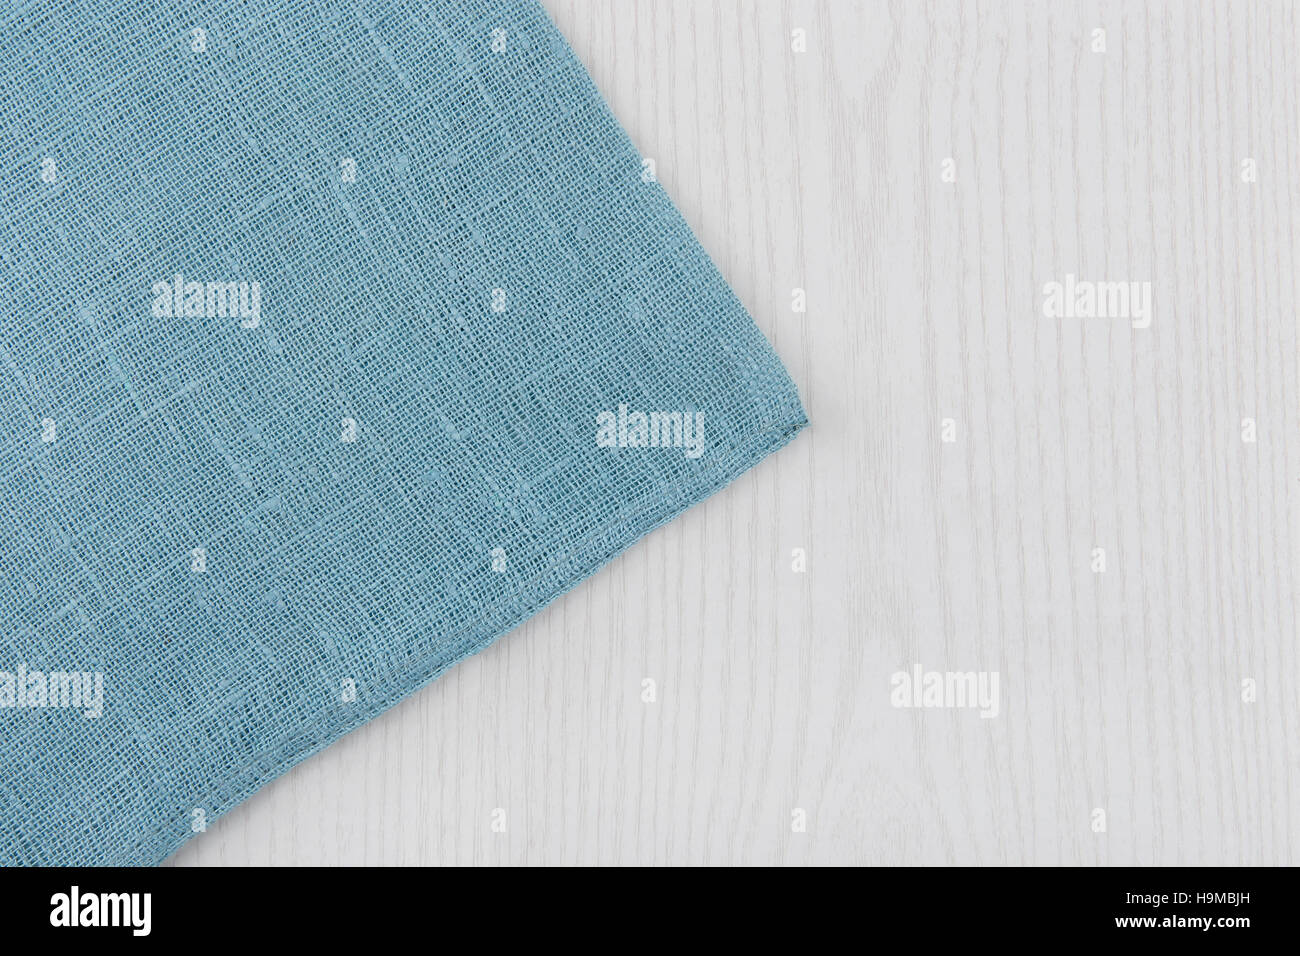 White wooden table texture - Napkin From Left Side Wooden Table White Blue Background Soft Blue Woven Linen Fabric Texture White Wood Texture